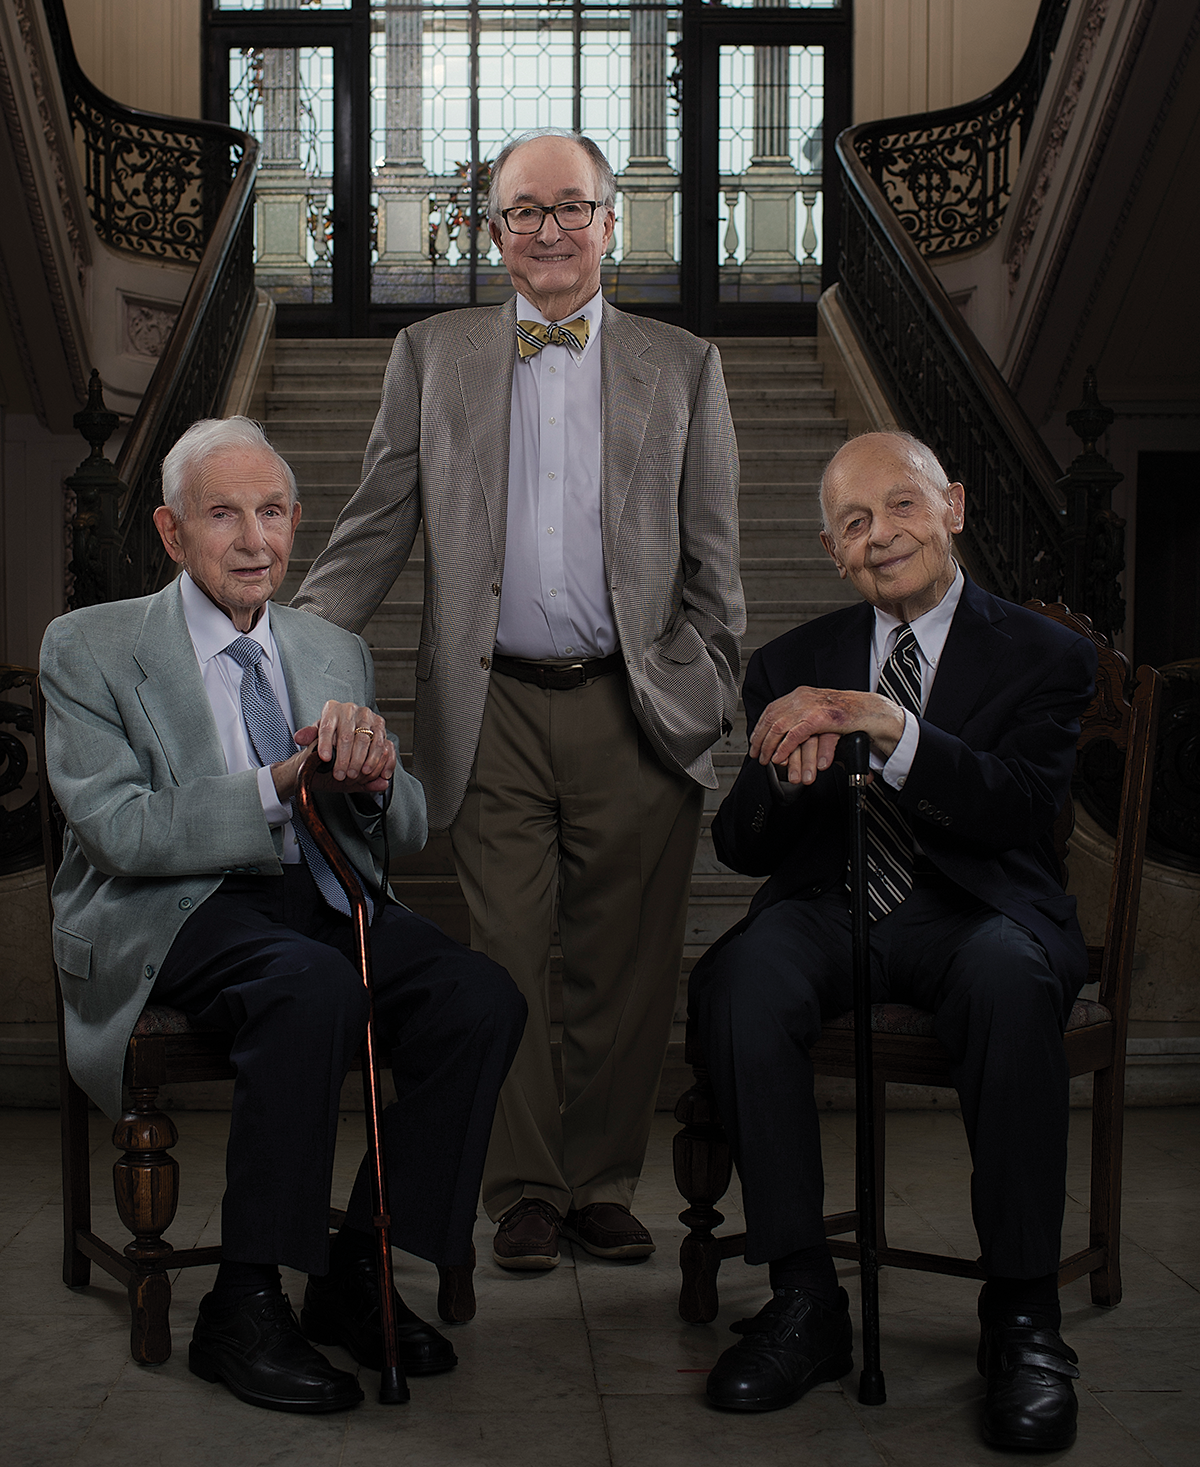 HONORARY CAMPAIGN CHAIRS - The #MakingAMuseumKC fundraising initiative is led by these three close friends and colleagues, who have lived in and supported Kansas City for more than 40 years.World War II veterans who are dedicated to arts, history, culture, education, healthcare, and entrepreneurship in Kansas City, Mr. Bill Dunn, Sr., Mr. Edward Matheny, and Mr. Henry Bloch (in memory) are working with the Board of Directors of the Kansas City Museum Foundation to strategically develop #MakingAMuseumKC and guide its priorities.